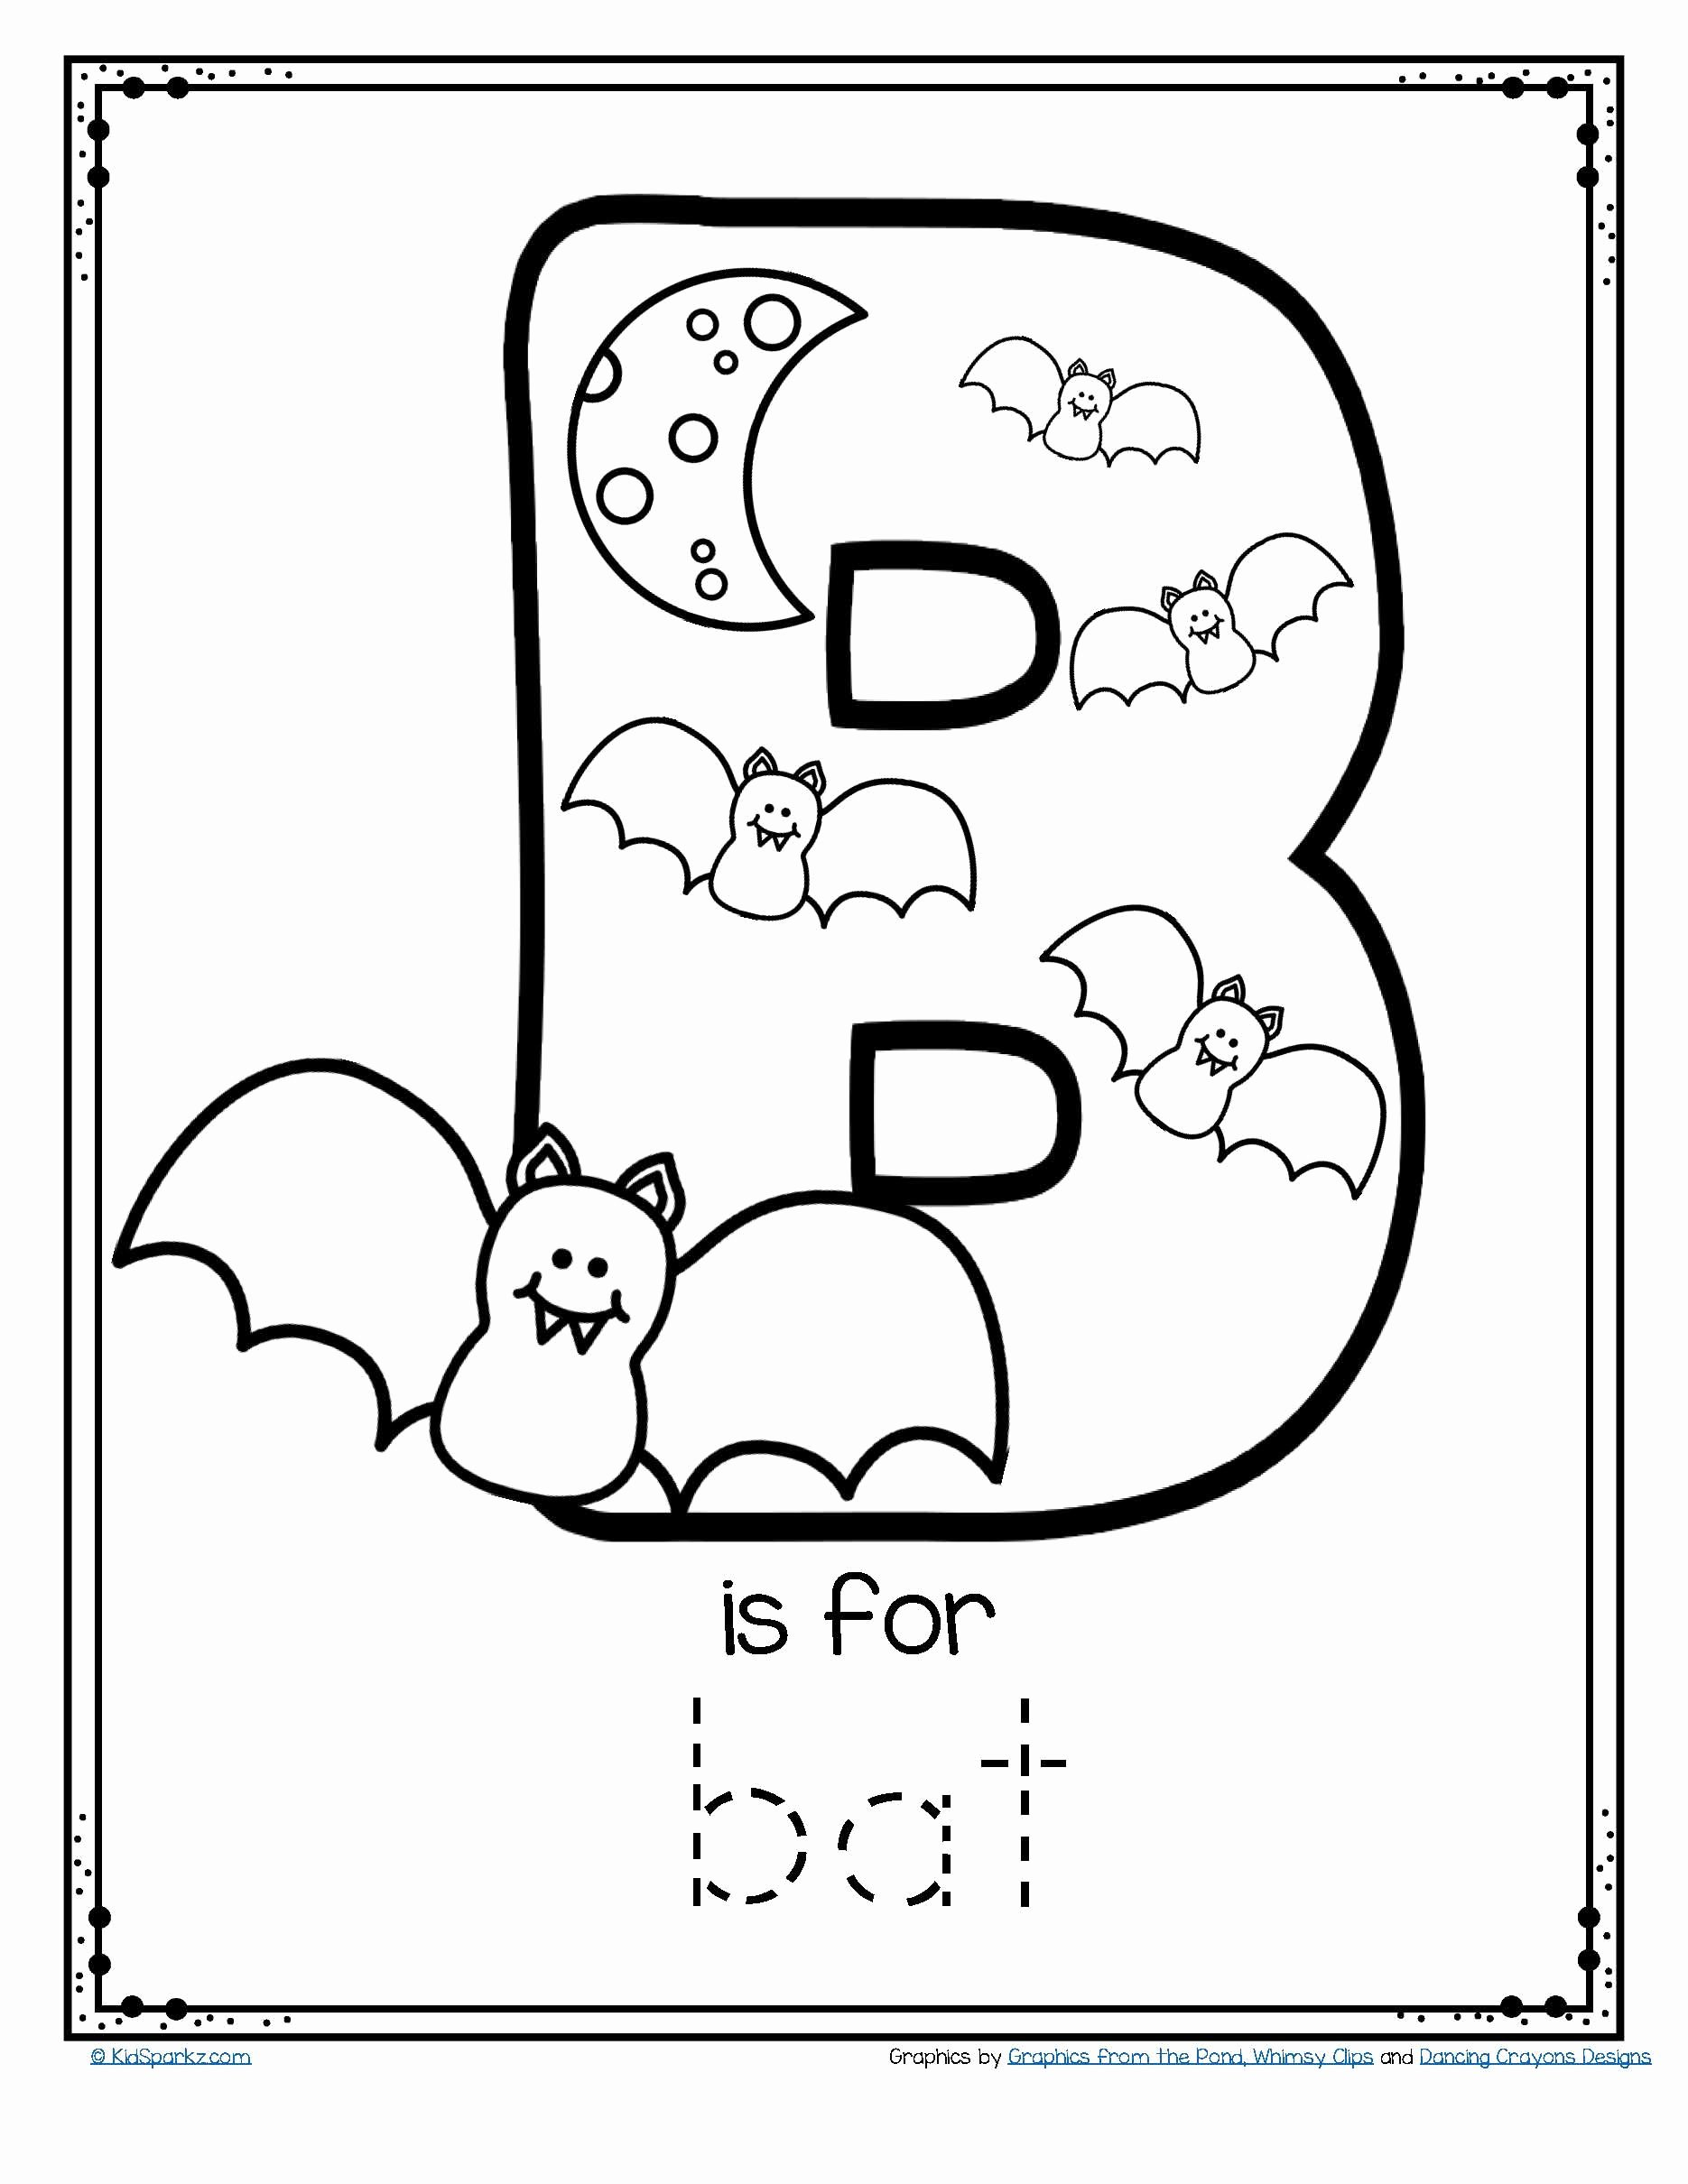 Letter A Printable Worksheets for Preschoolers Inspirational Worksheets Free Alphabet Tracing and Coloring Printable is